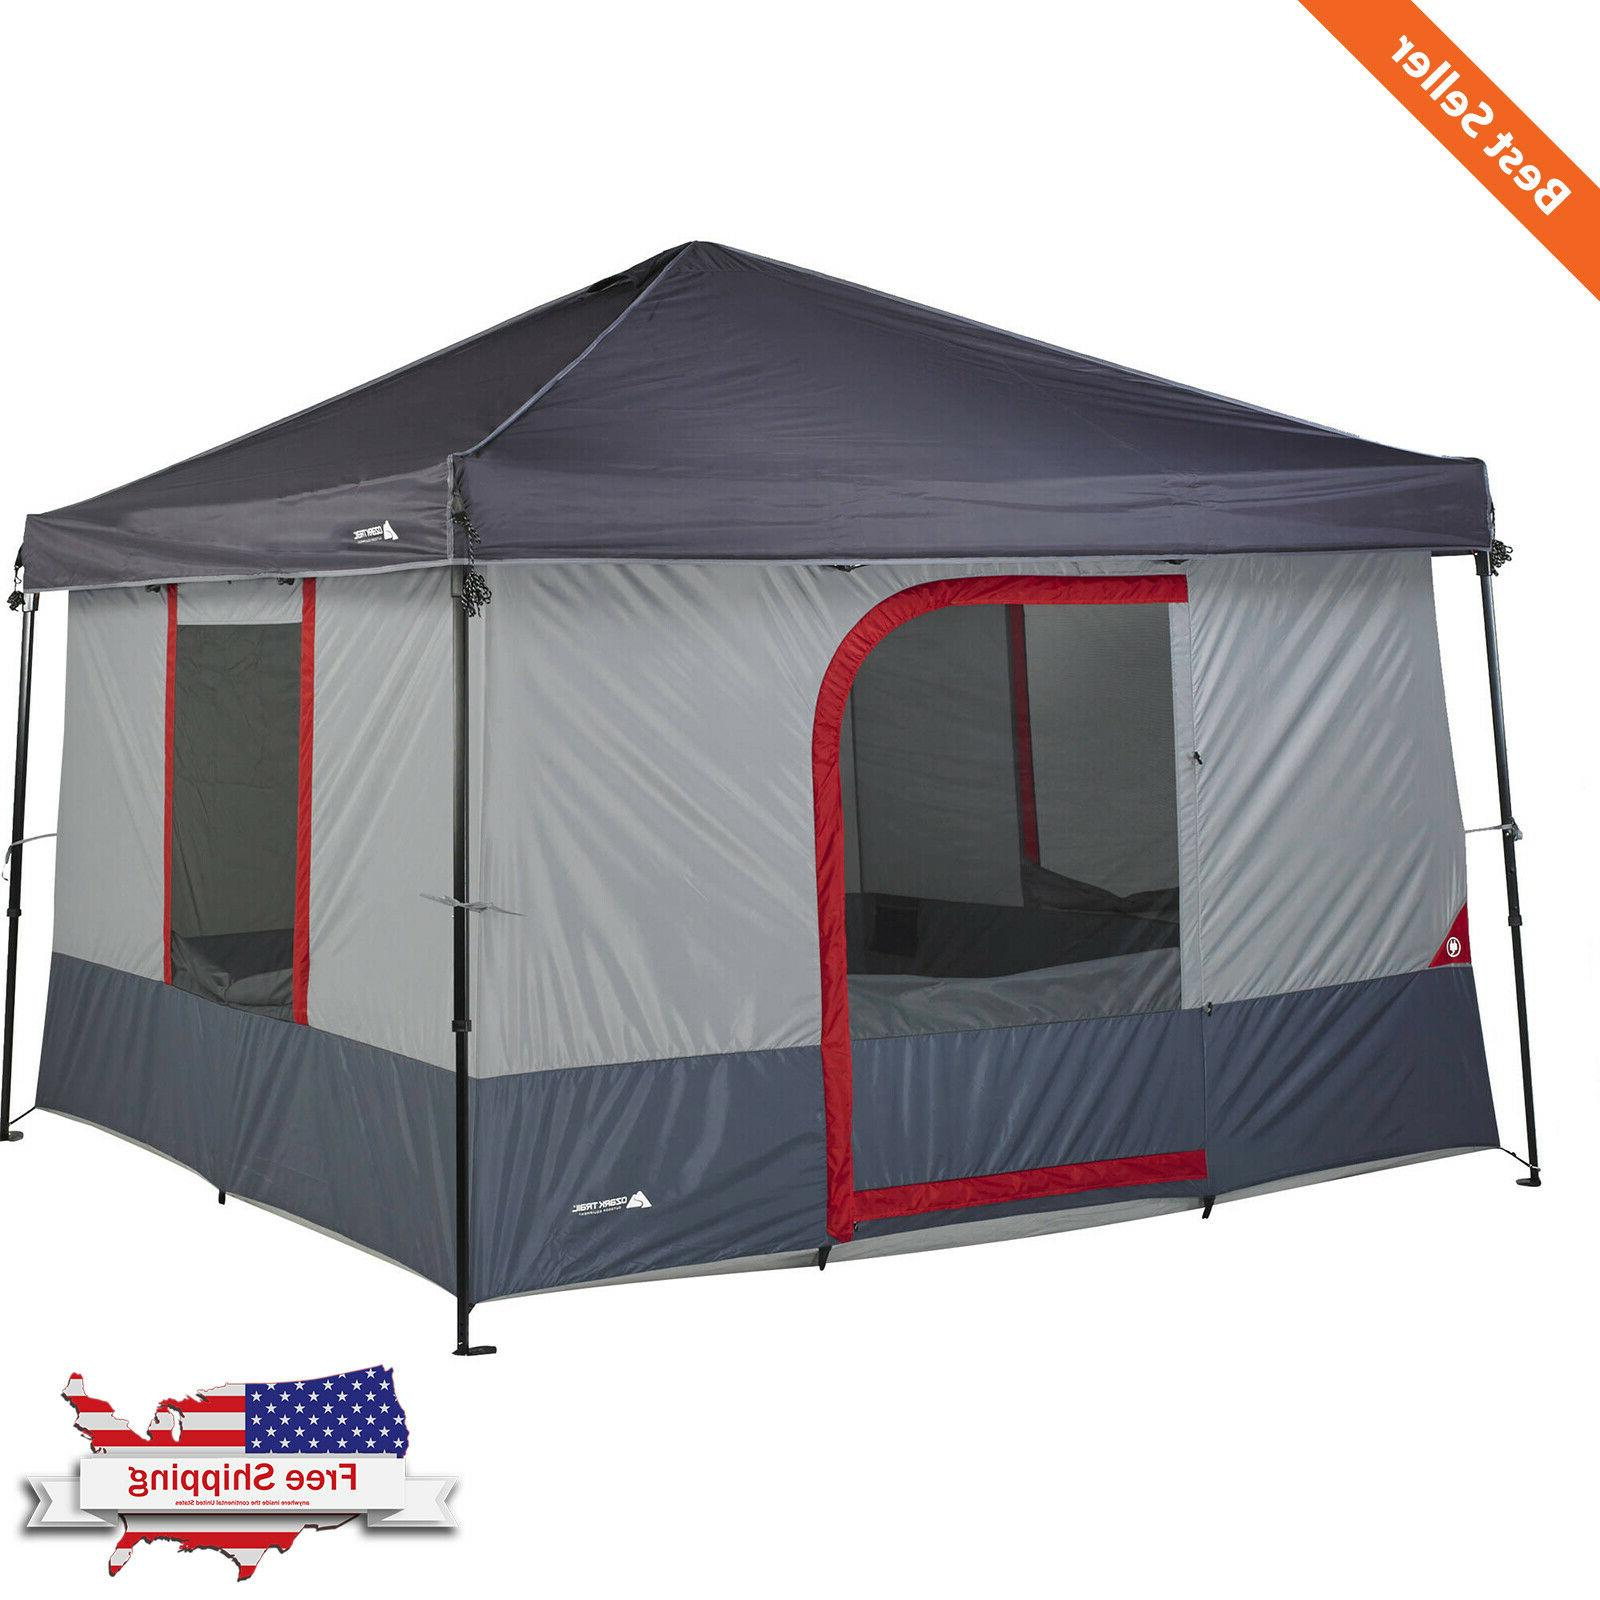 6 person instant tent outdoor cabin waterproof